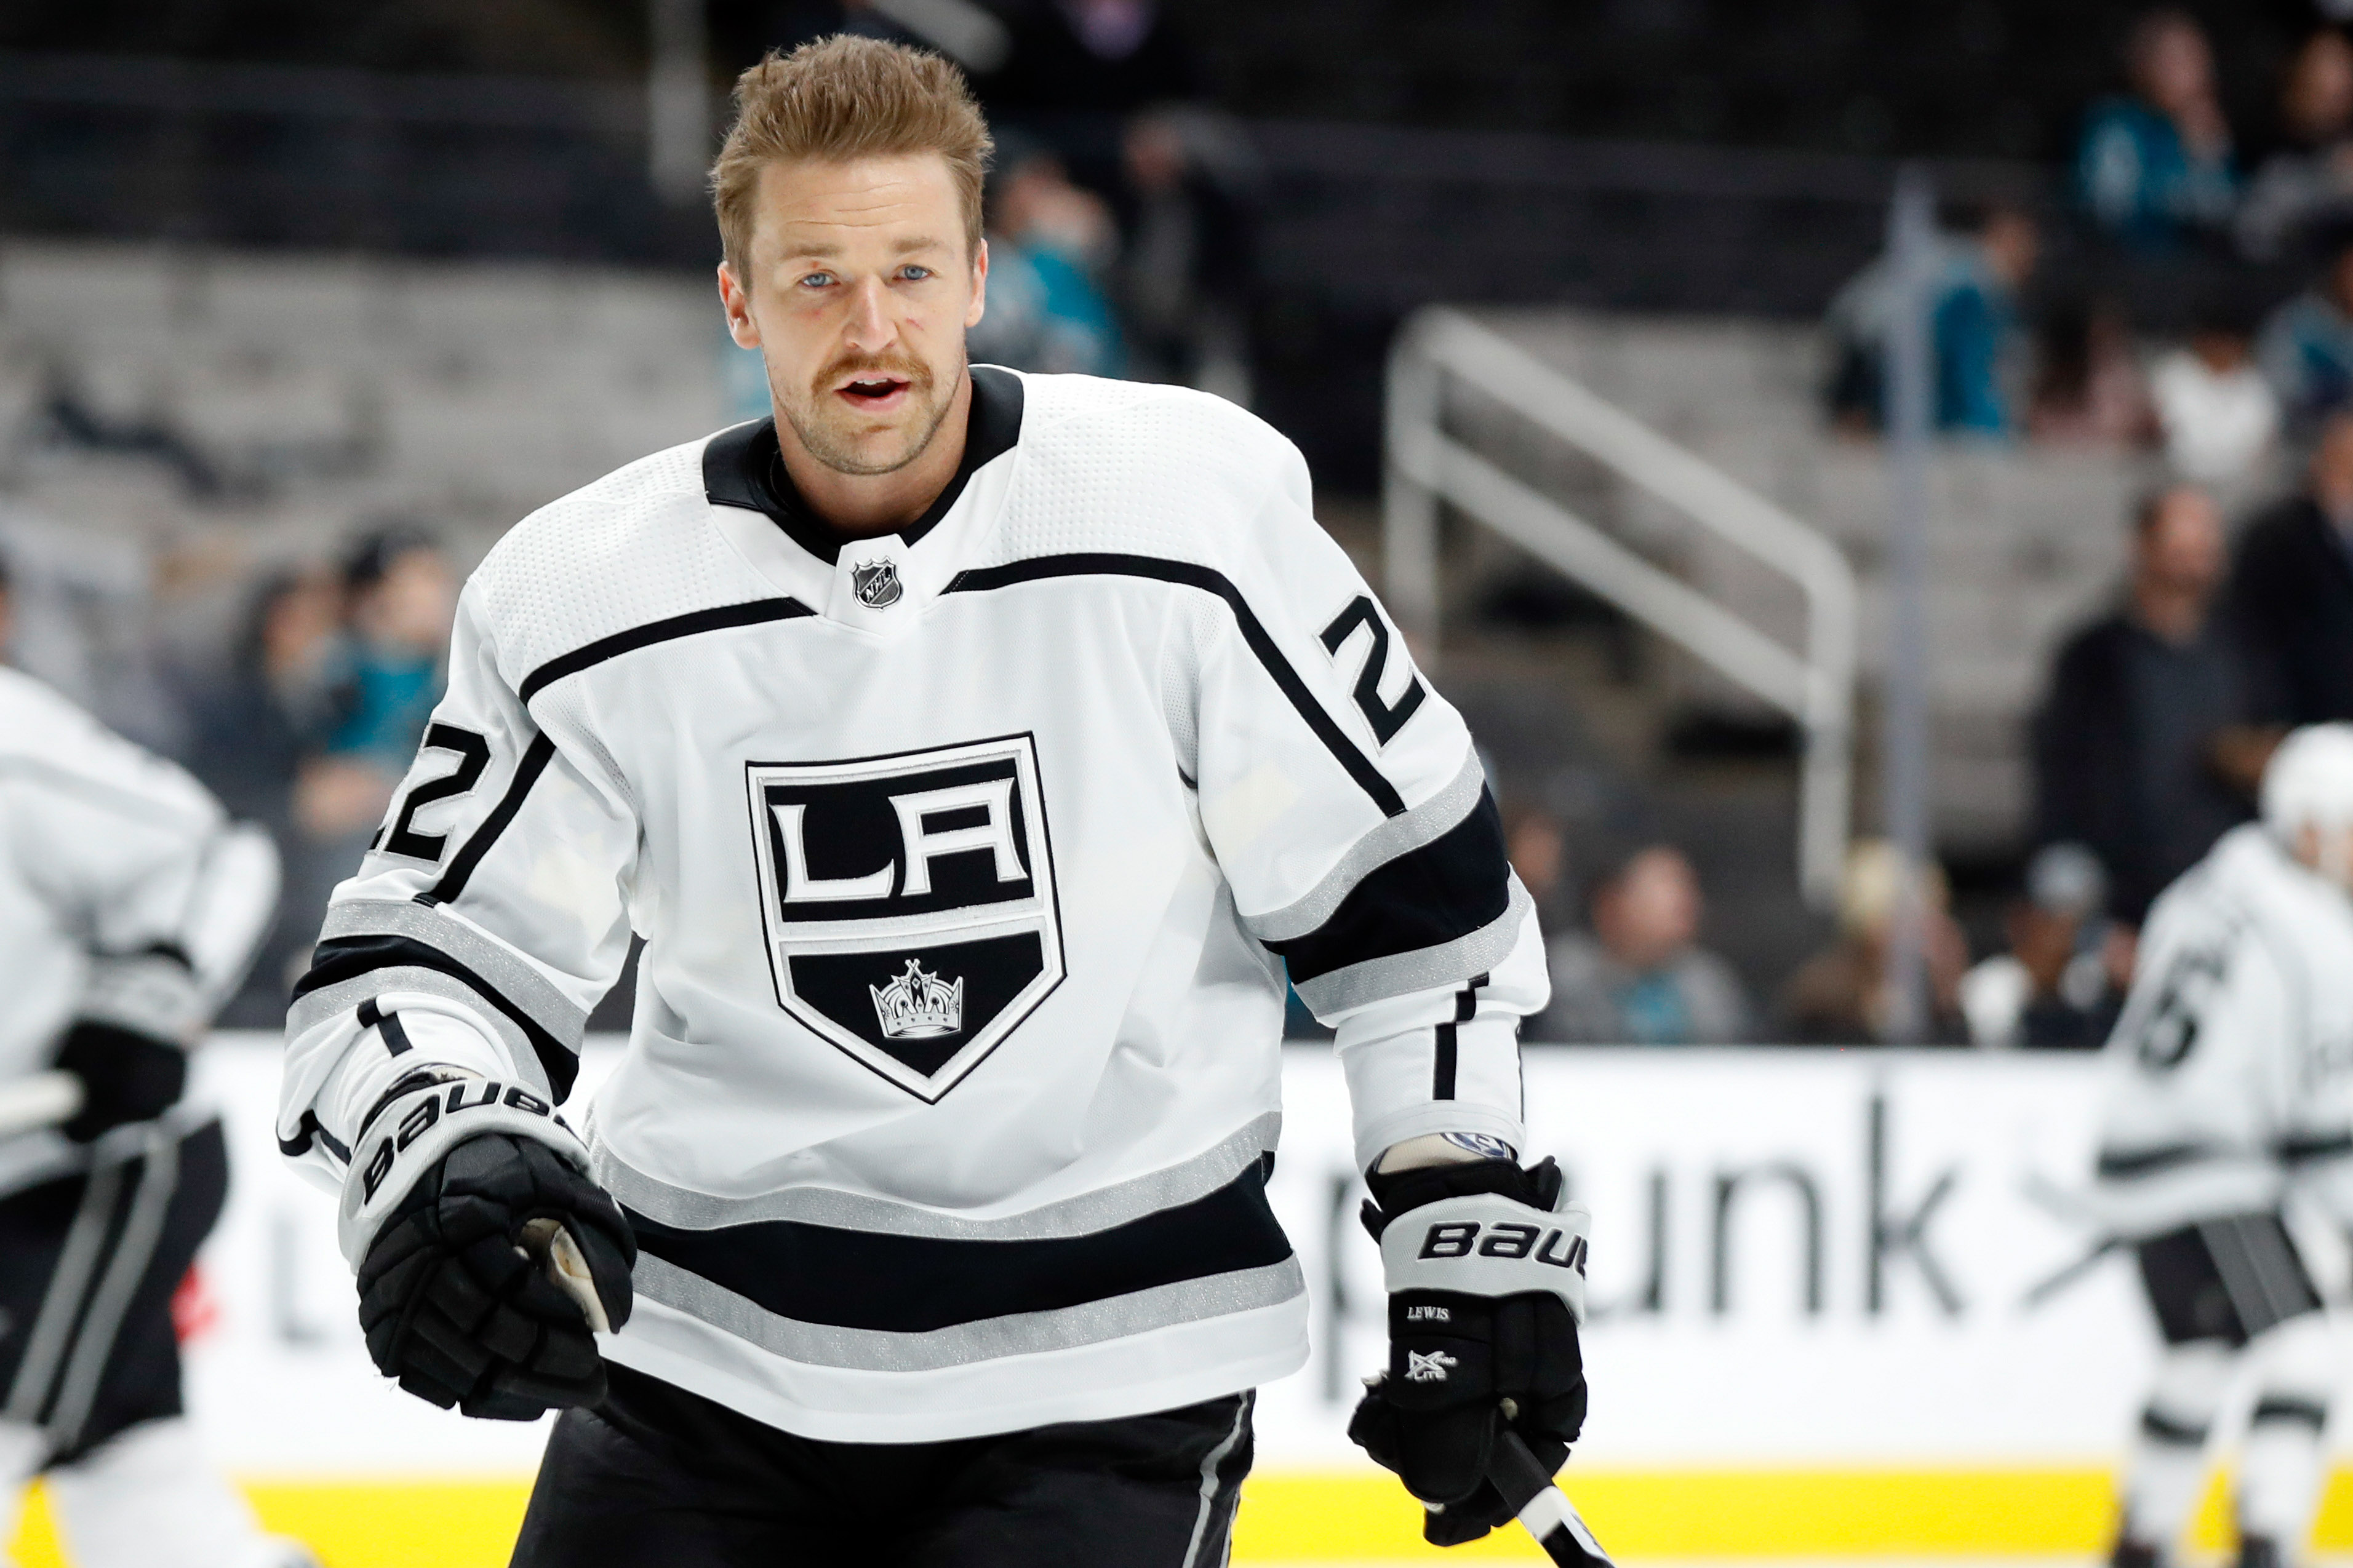 Nov 29, 2019; San Jose, CA, USA; Los Angeles Kings center Trevor Lewis (22) warms-up on the ice before the game against the San Jose Sharks at SAP Center at San Jose.